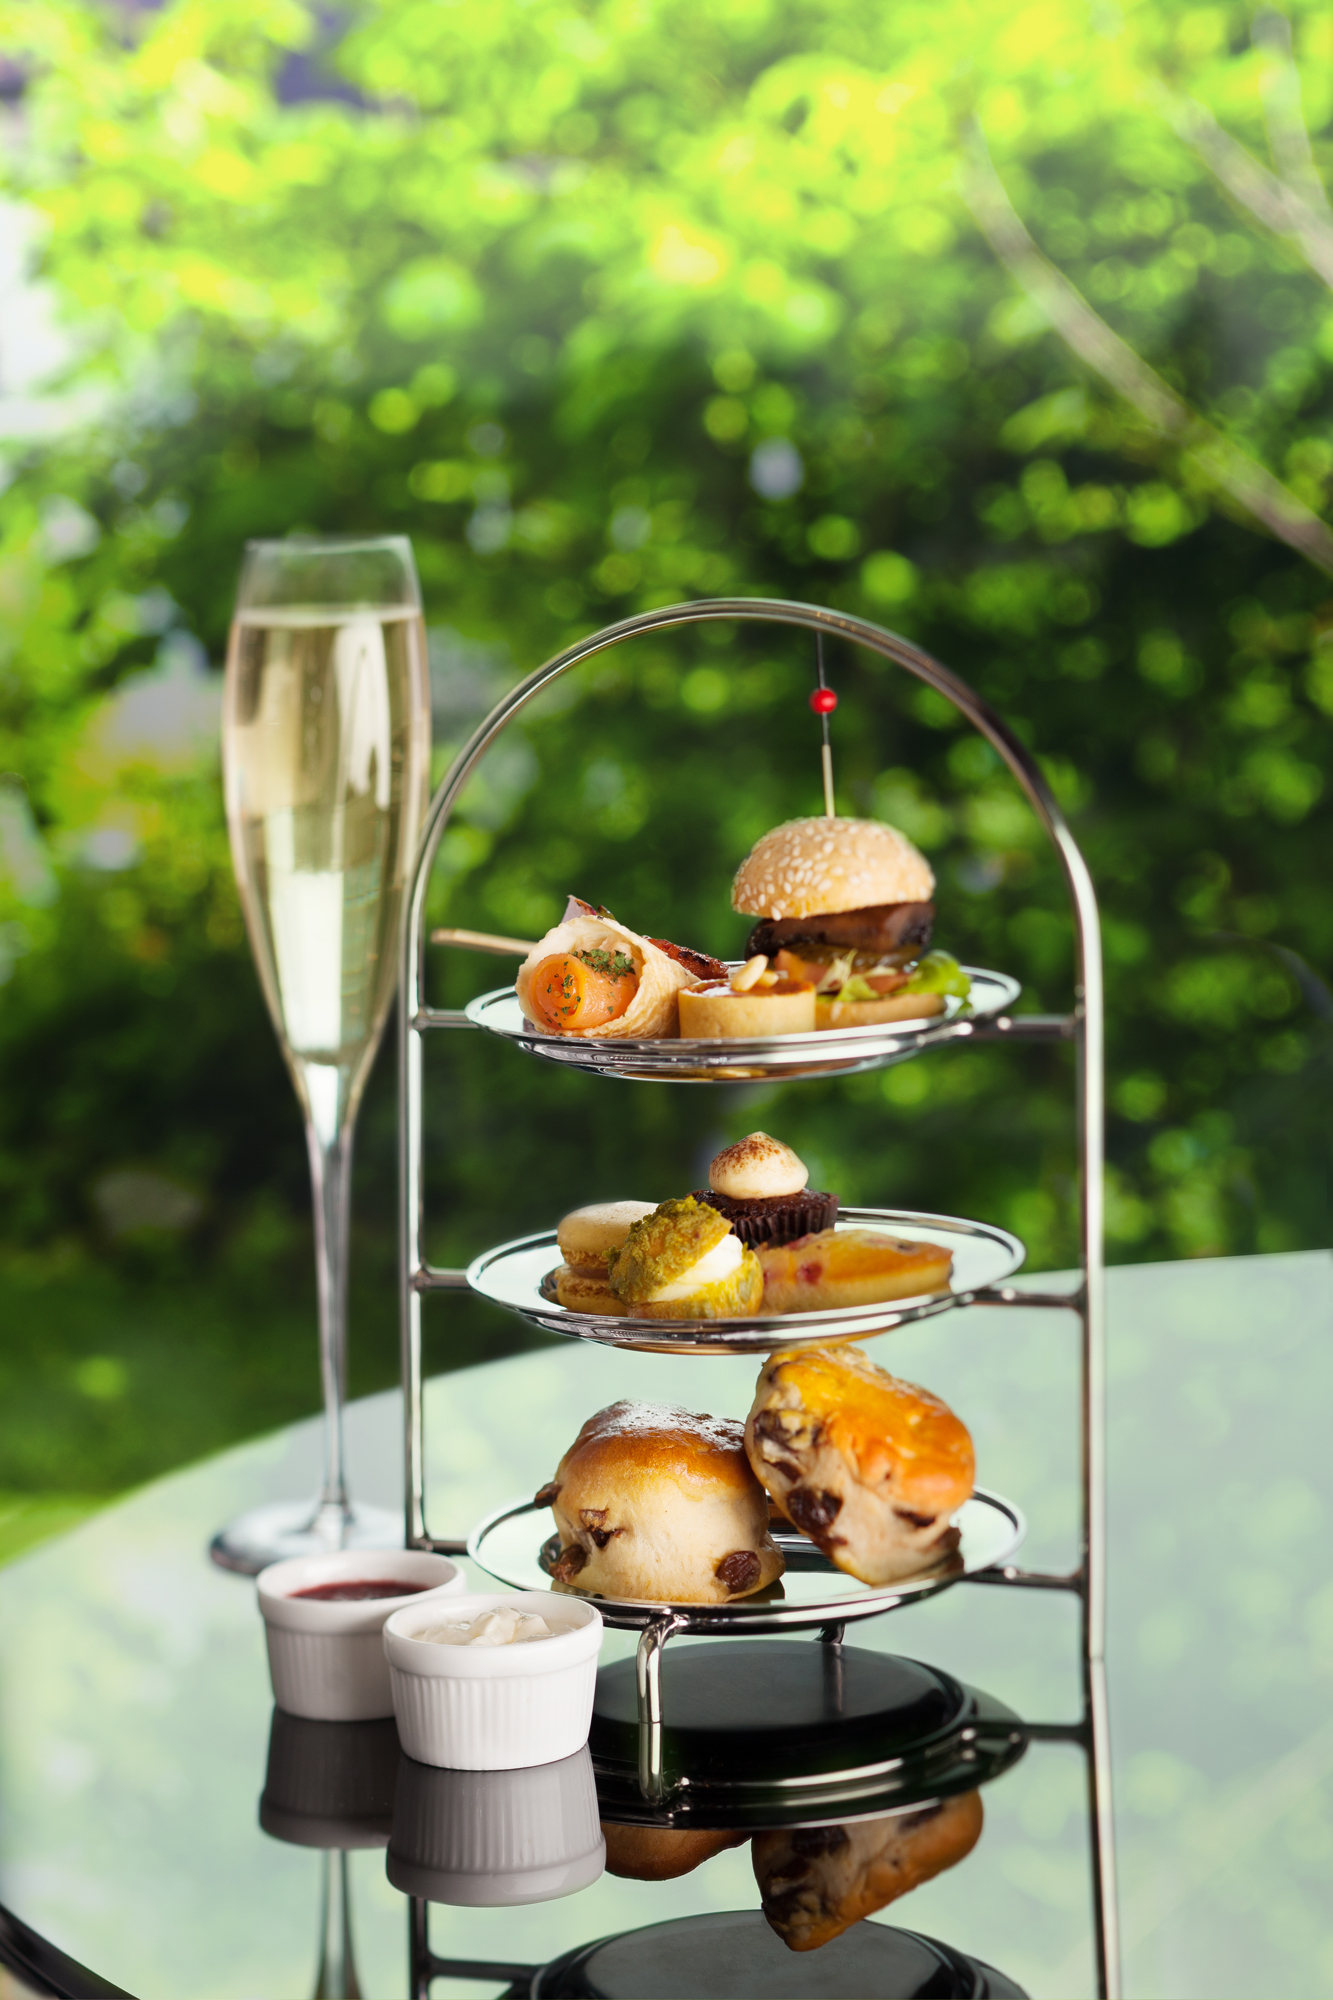 The Champagne Bar - Sweet, Savory and Bubbles